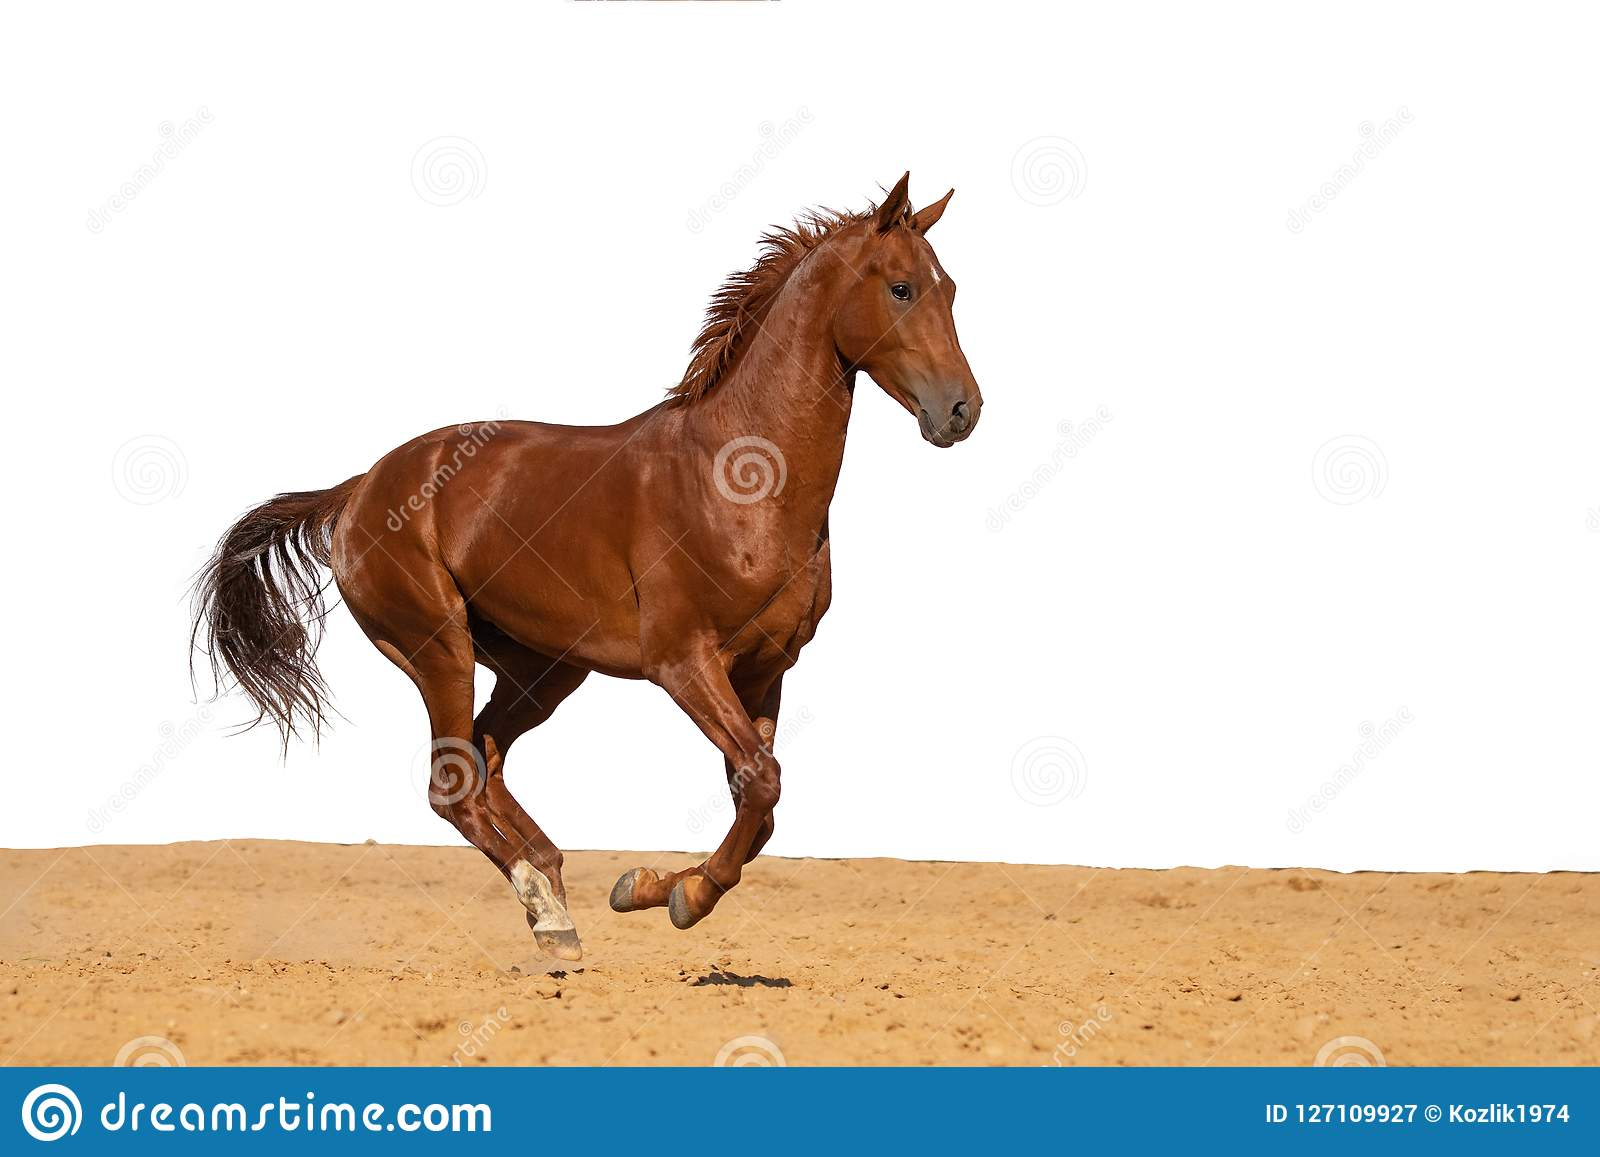 Horse galloping on sand on a white background